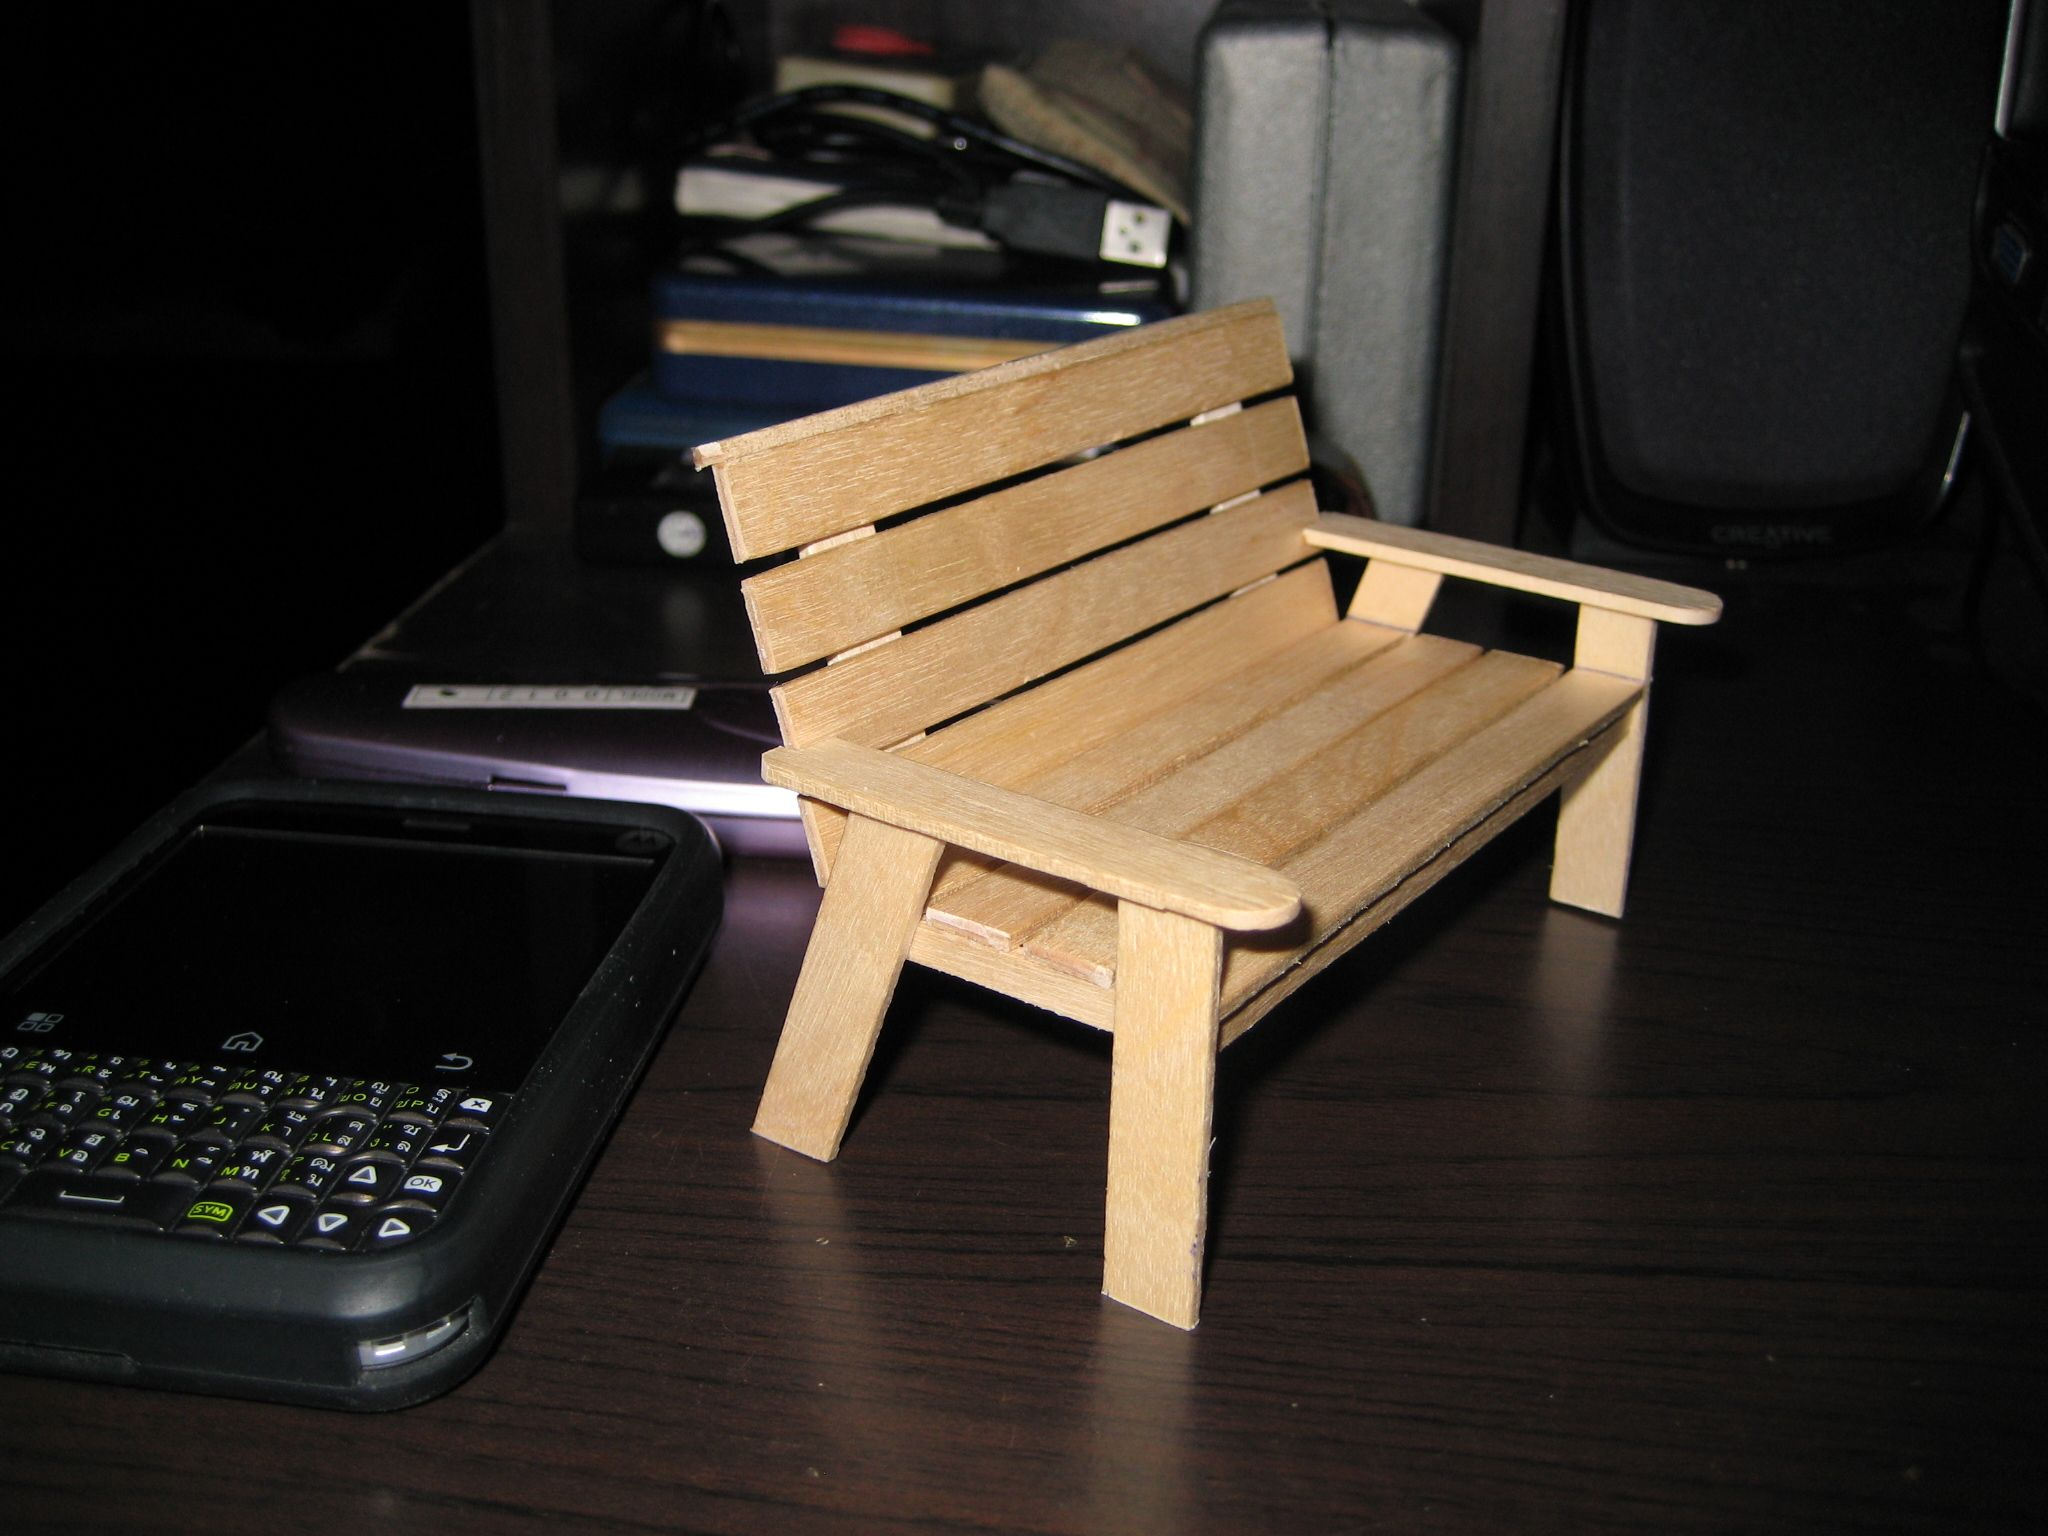 Round wooden sticks for crafts - My Hobby Craft Miniature Park Benches For Dolls Popsicle Stick